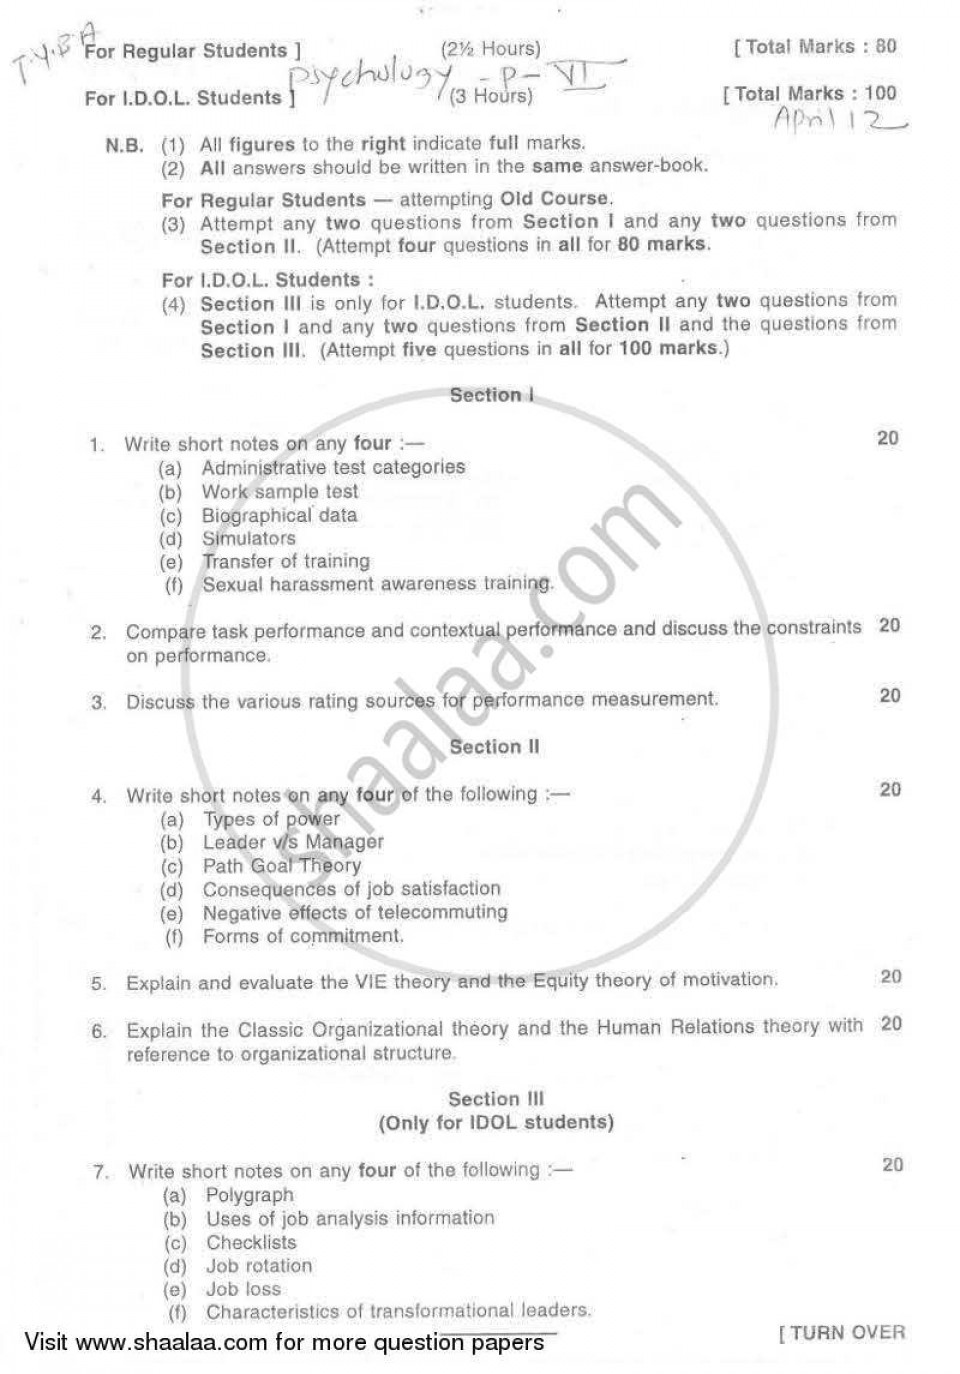 017 Psychologyearch Paper On Dreams University Of Mumbai Bachelor Industrial Organizational T Y Yearly Pattern Semester Tyba 2011 29a03925dfc524f2aa4cb10e4d3da996a Singular Psychology Research Articles Topics 960